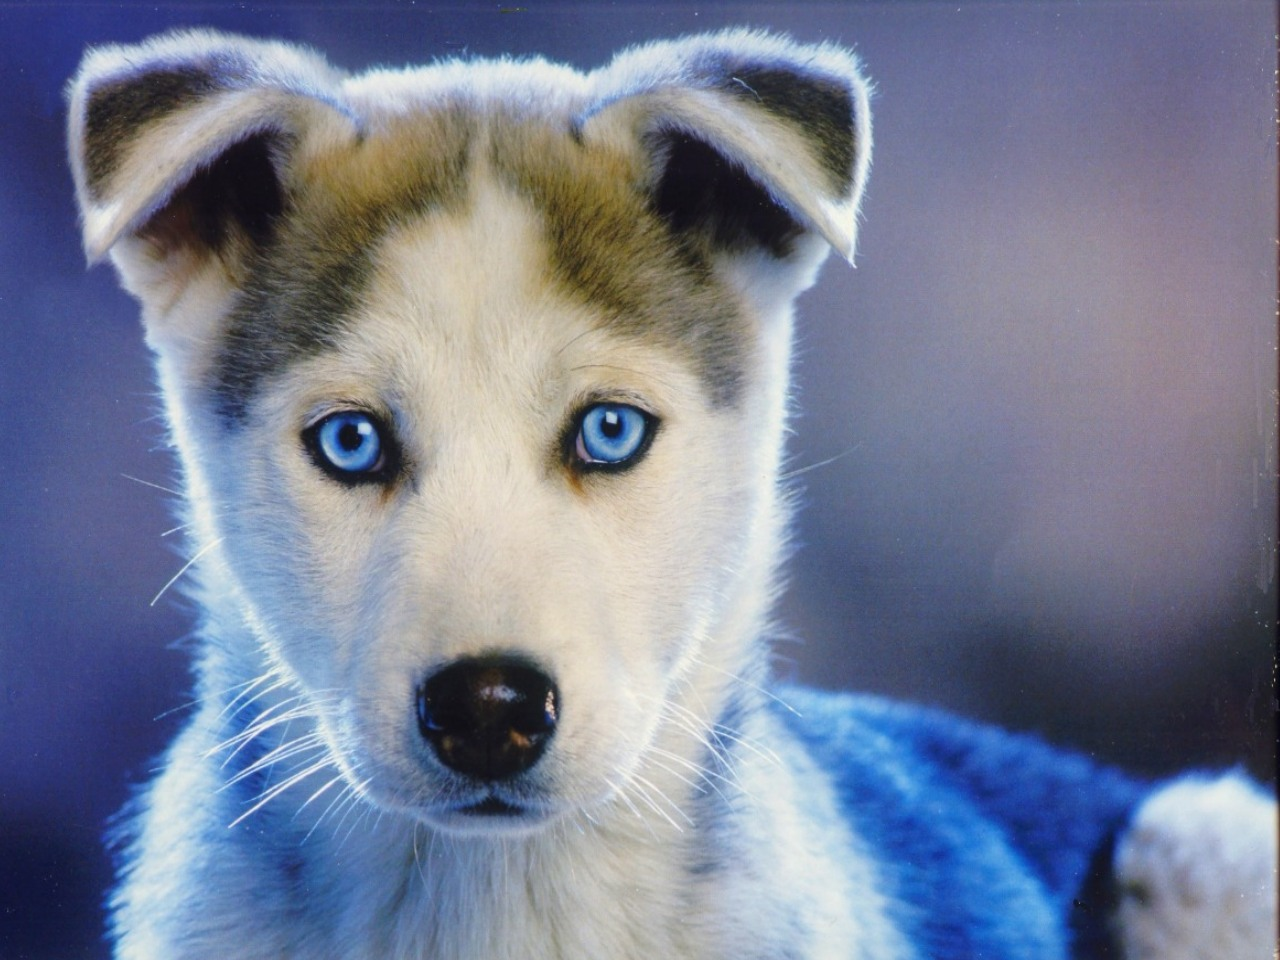 Blue-eyed puppy by Serval on DeviantArt